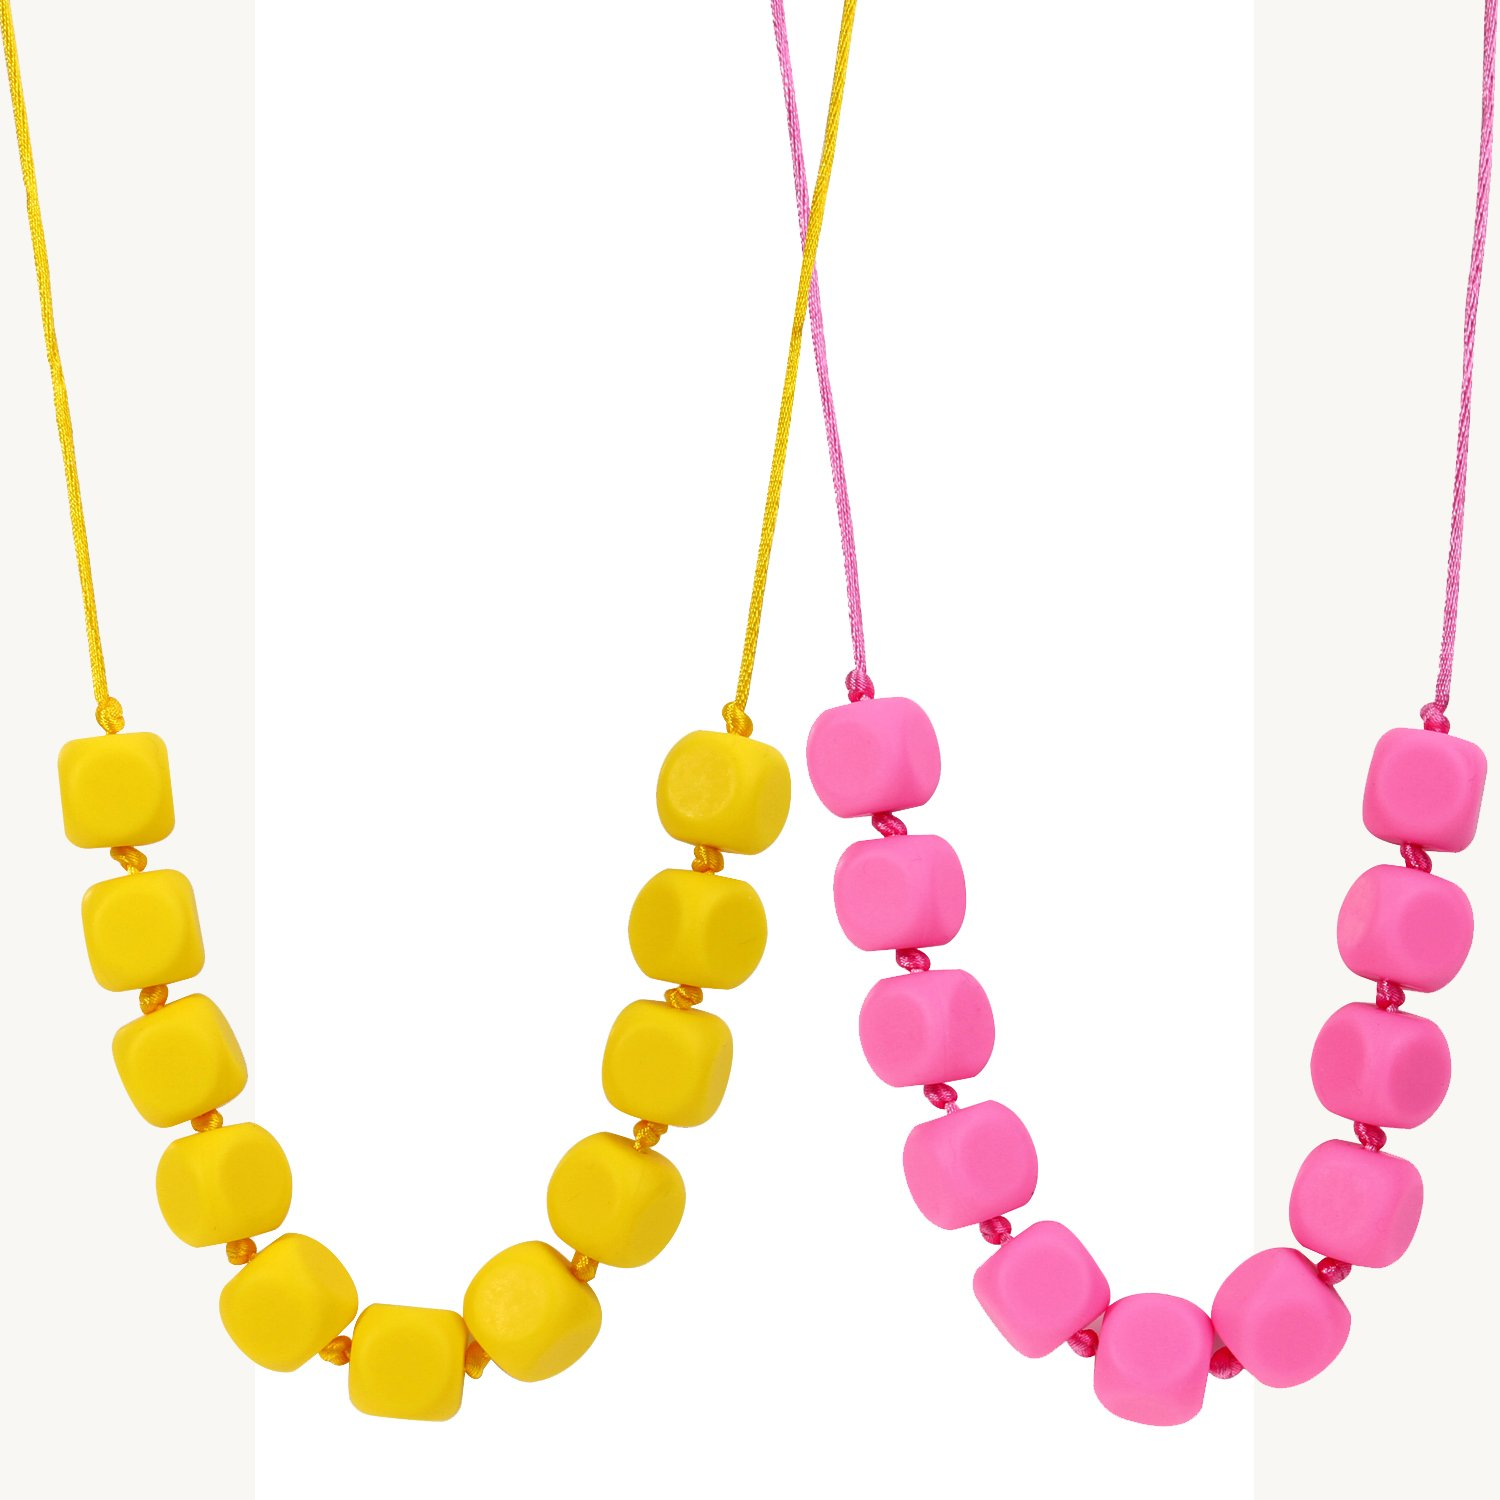 MyBoo Autism/Sensory/Teething Chewable Funky Square Beaded Necklace - Set of 2, Pink/Yellow by MyBoo   B012U9BMT6